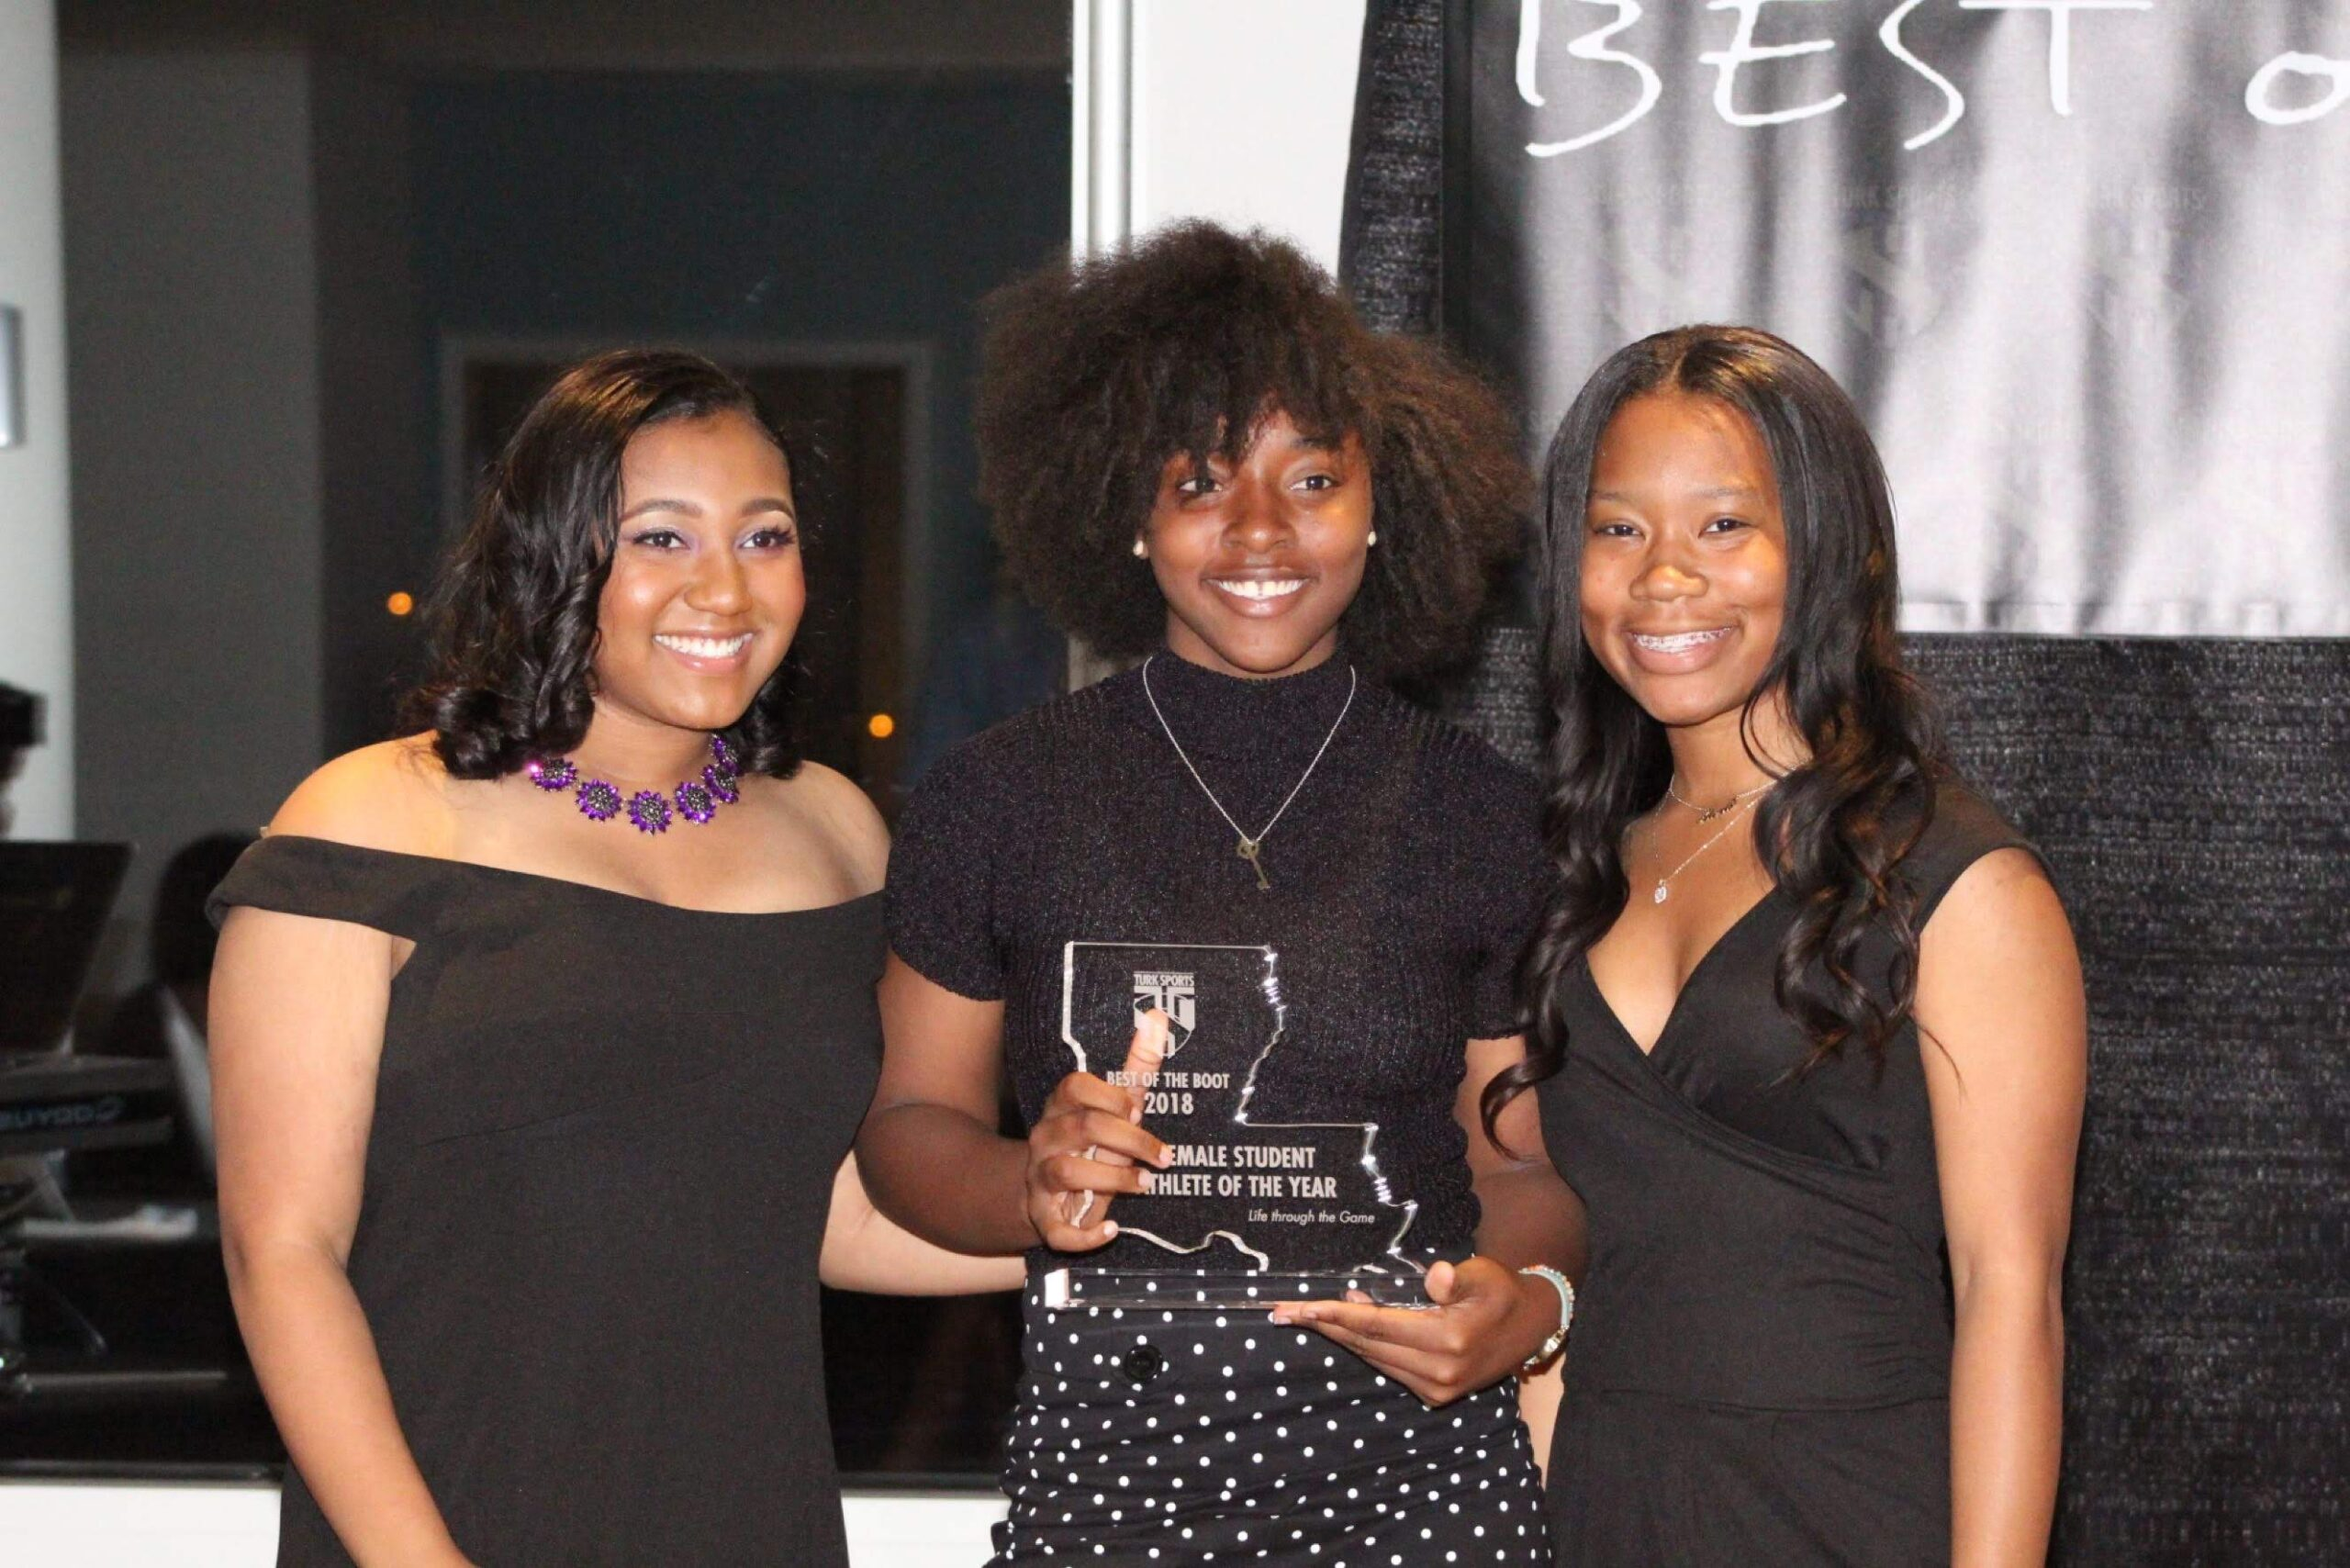 Genise Wells- Female Student-Athlete of the Year w/ presenters Amari Hurst & Alexis Lawson